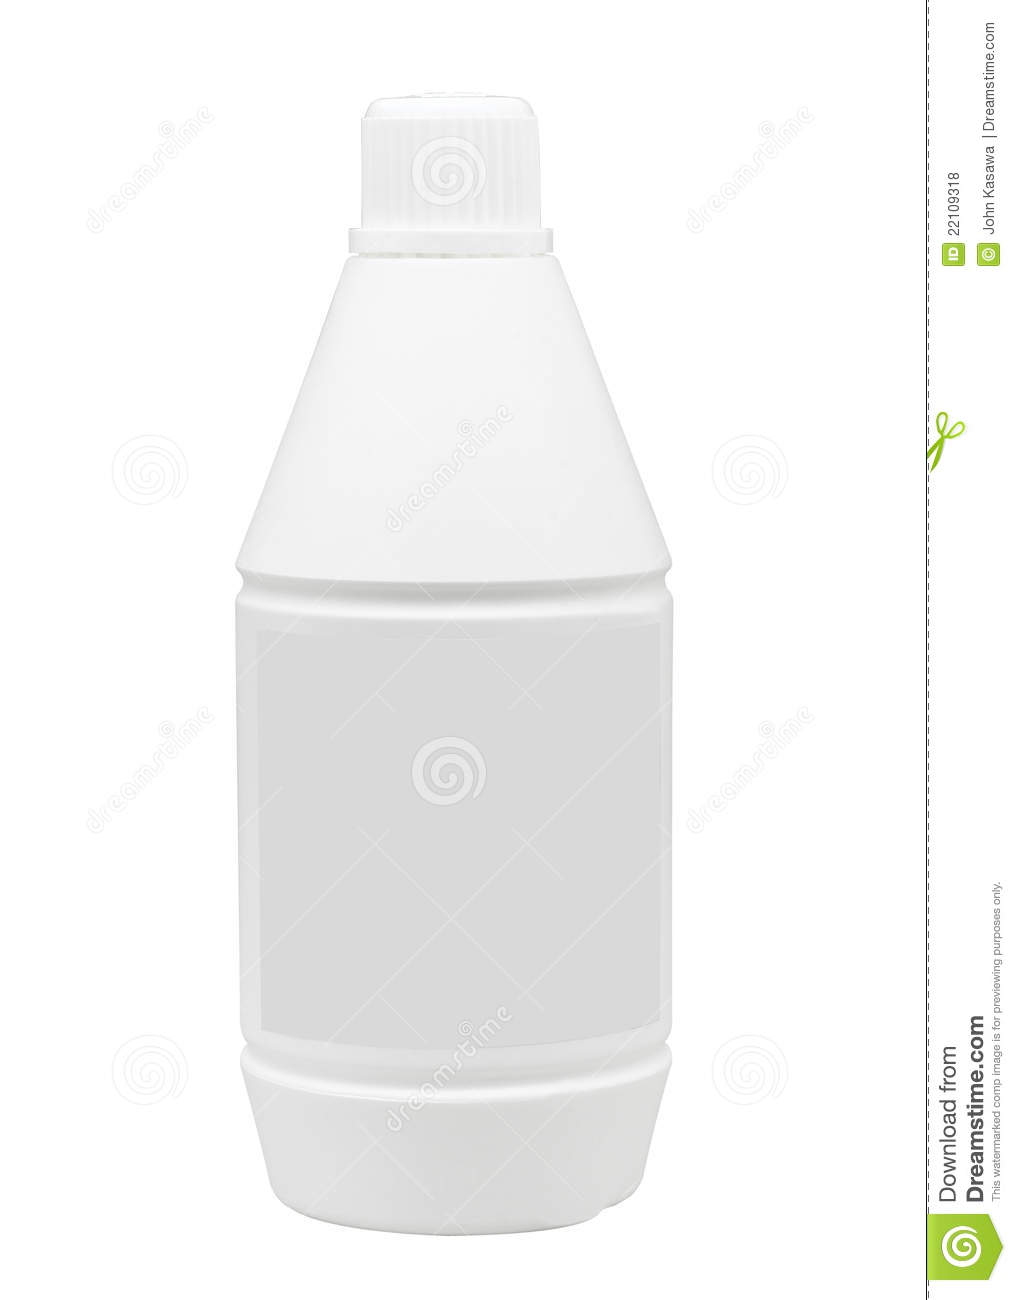 Empty Bottle Without Sign Or Label Royalty Free Stock Photos ...